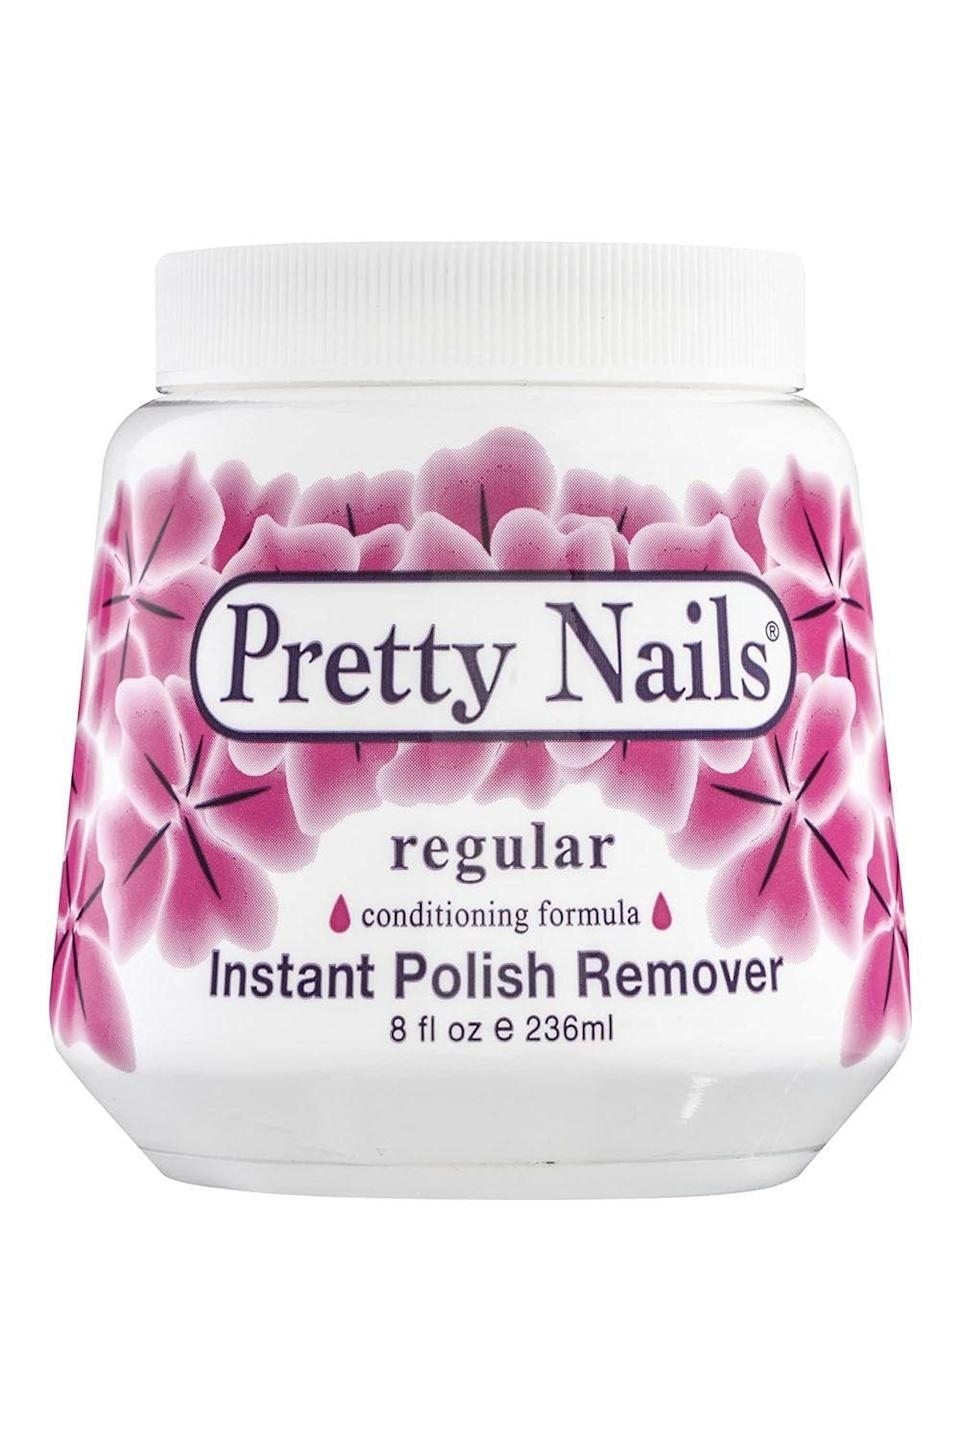 """<p><strong>Pretty Nails</strong></p><p>amazon.com</p><p><strong>$14.99</strong></p><p><a href=""""https://www.amazon.com/dp/B000142KZ8?tag=syn-yahoo-20&ascsubtag=%5Bartid%7C10049.g.33348729%5Bsrc%7Cyahoo-us"""" rel=""""nofollow noopener"""" target=""""_blank"""" data-ylk=""""slk:Shop Now"""" class=""""link rapid-noclick-resp"""">Shop Now</a></p><p>Okay, when I first heard of this sponge nail remover, I thought it was a scam. Like, there was no way removing your polish could be that easy. But, surprisingly, there really is no catch. The jar comes with a big sponge that's soaked in a nail polish remover formula. Put your finger inside the hole in the sponge, twist, <strong>and when you take out your nail, the <a href=""""https://www.cosmopolitan.com/style-beauty/beauty/g30756911/blue-nail-polish-colors-ideas/"""" rel=""""nofollow noopener"""" target=""""_blank"""" data-ylk=""""slk:polish"""" class=""""link rapid-noclick-resp"""">polish</a> will be completely gone.</strong> Sounds fake, but I swear it's not. </p>"""